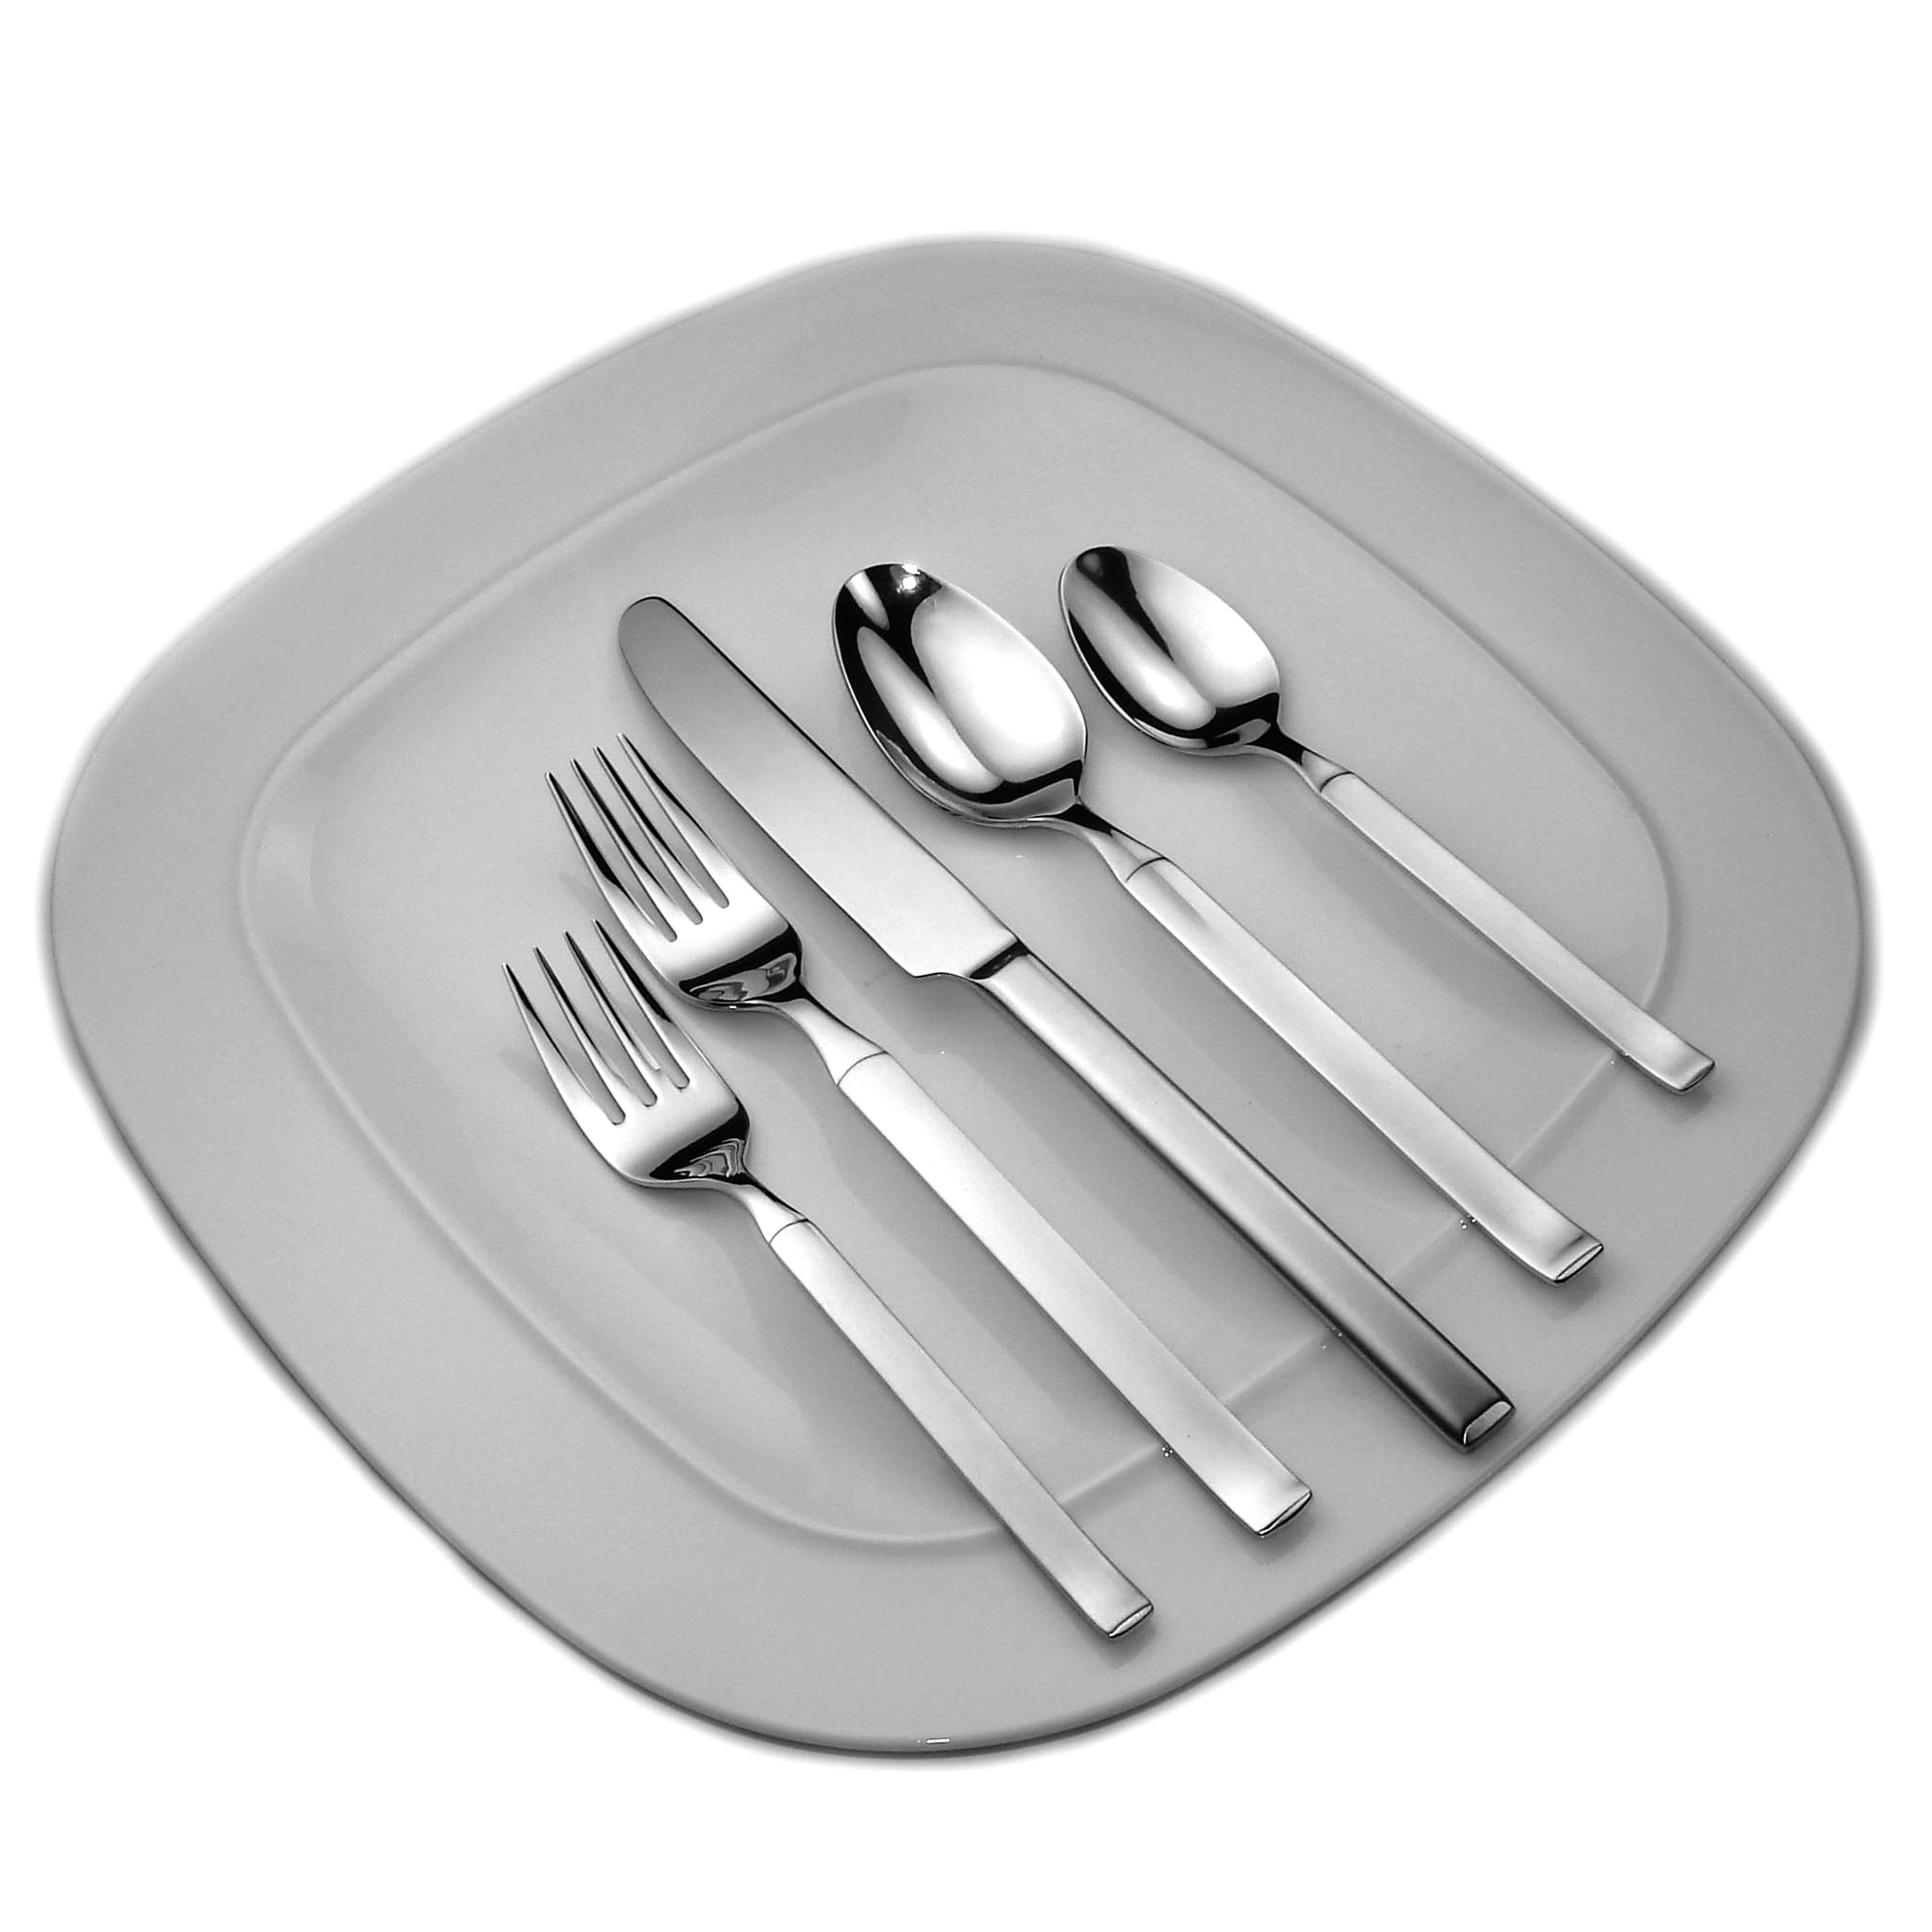 David Shaw Orchid 45pc Flatware Set - Free Shipping Today - Overstock - 14339742  sc 1 st  Overstock.com & David Shaw Orchid 45pc Flatware Set - Free Shipping Today ...